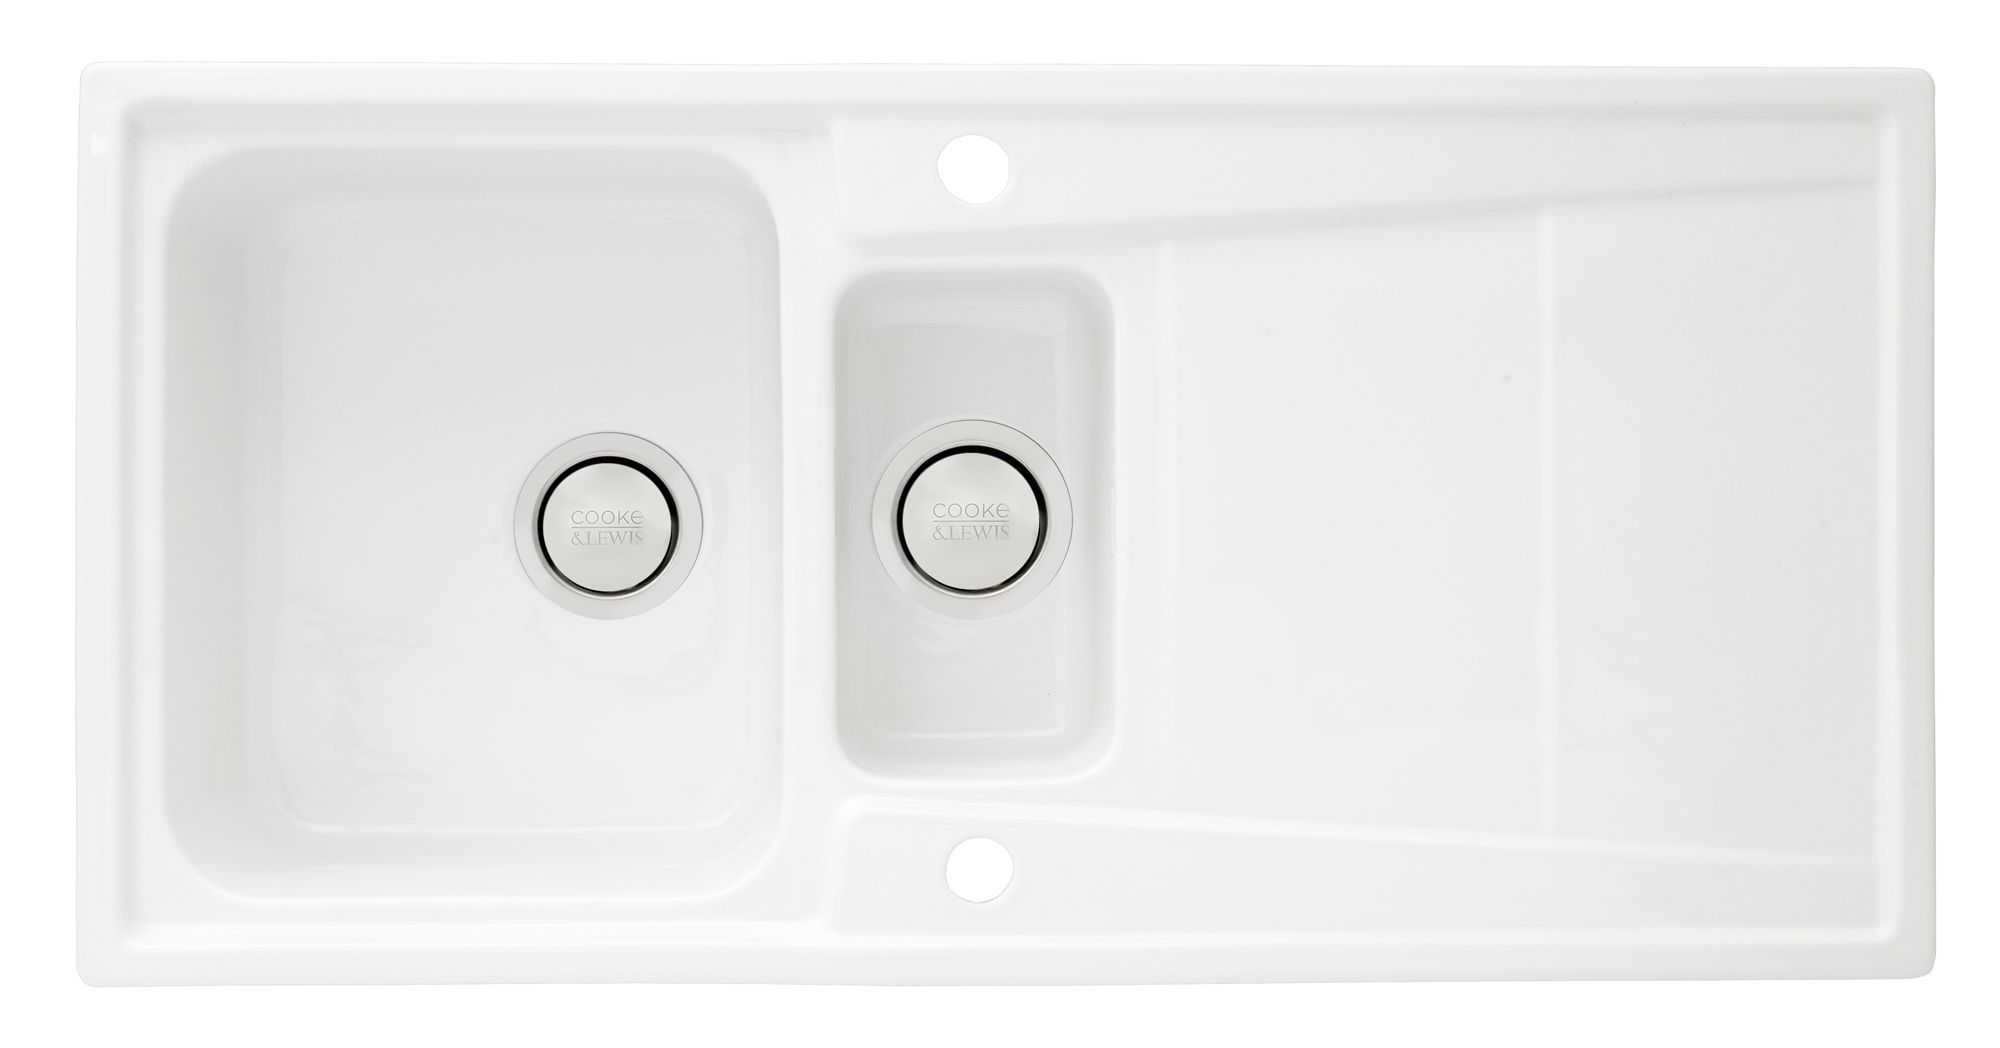 Elegant Ceramic Kitchen Sinks B&q - Taste